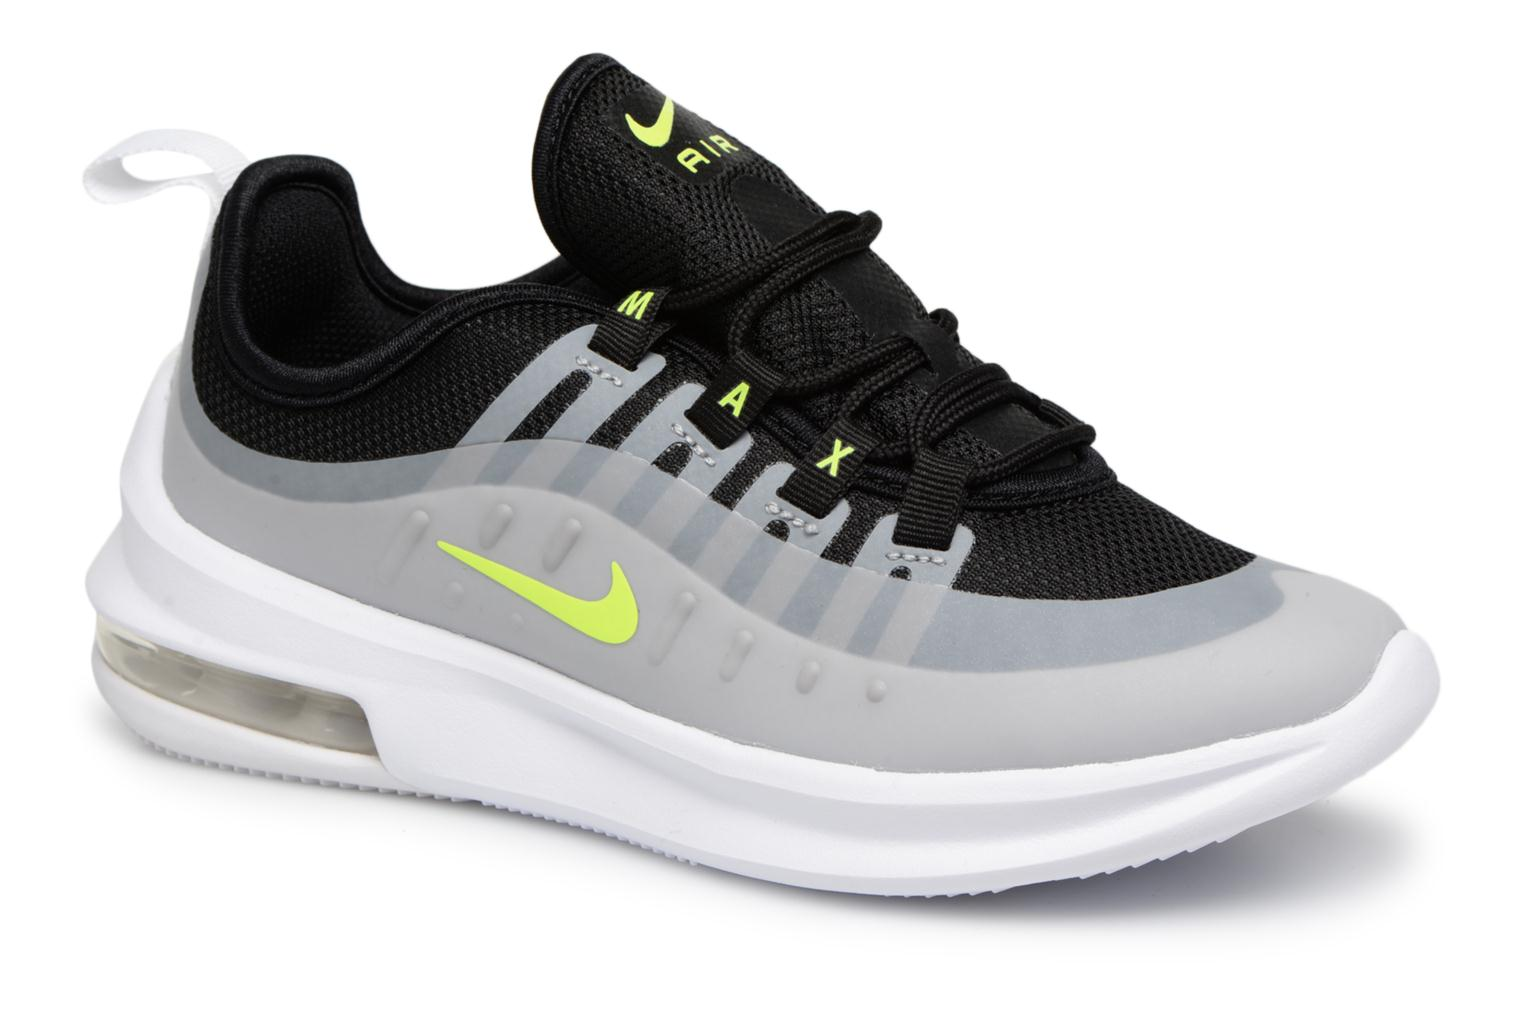 Trainers Nike Air Max Axis (PS) Black detailed view Pair view